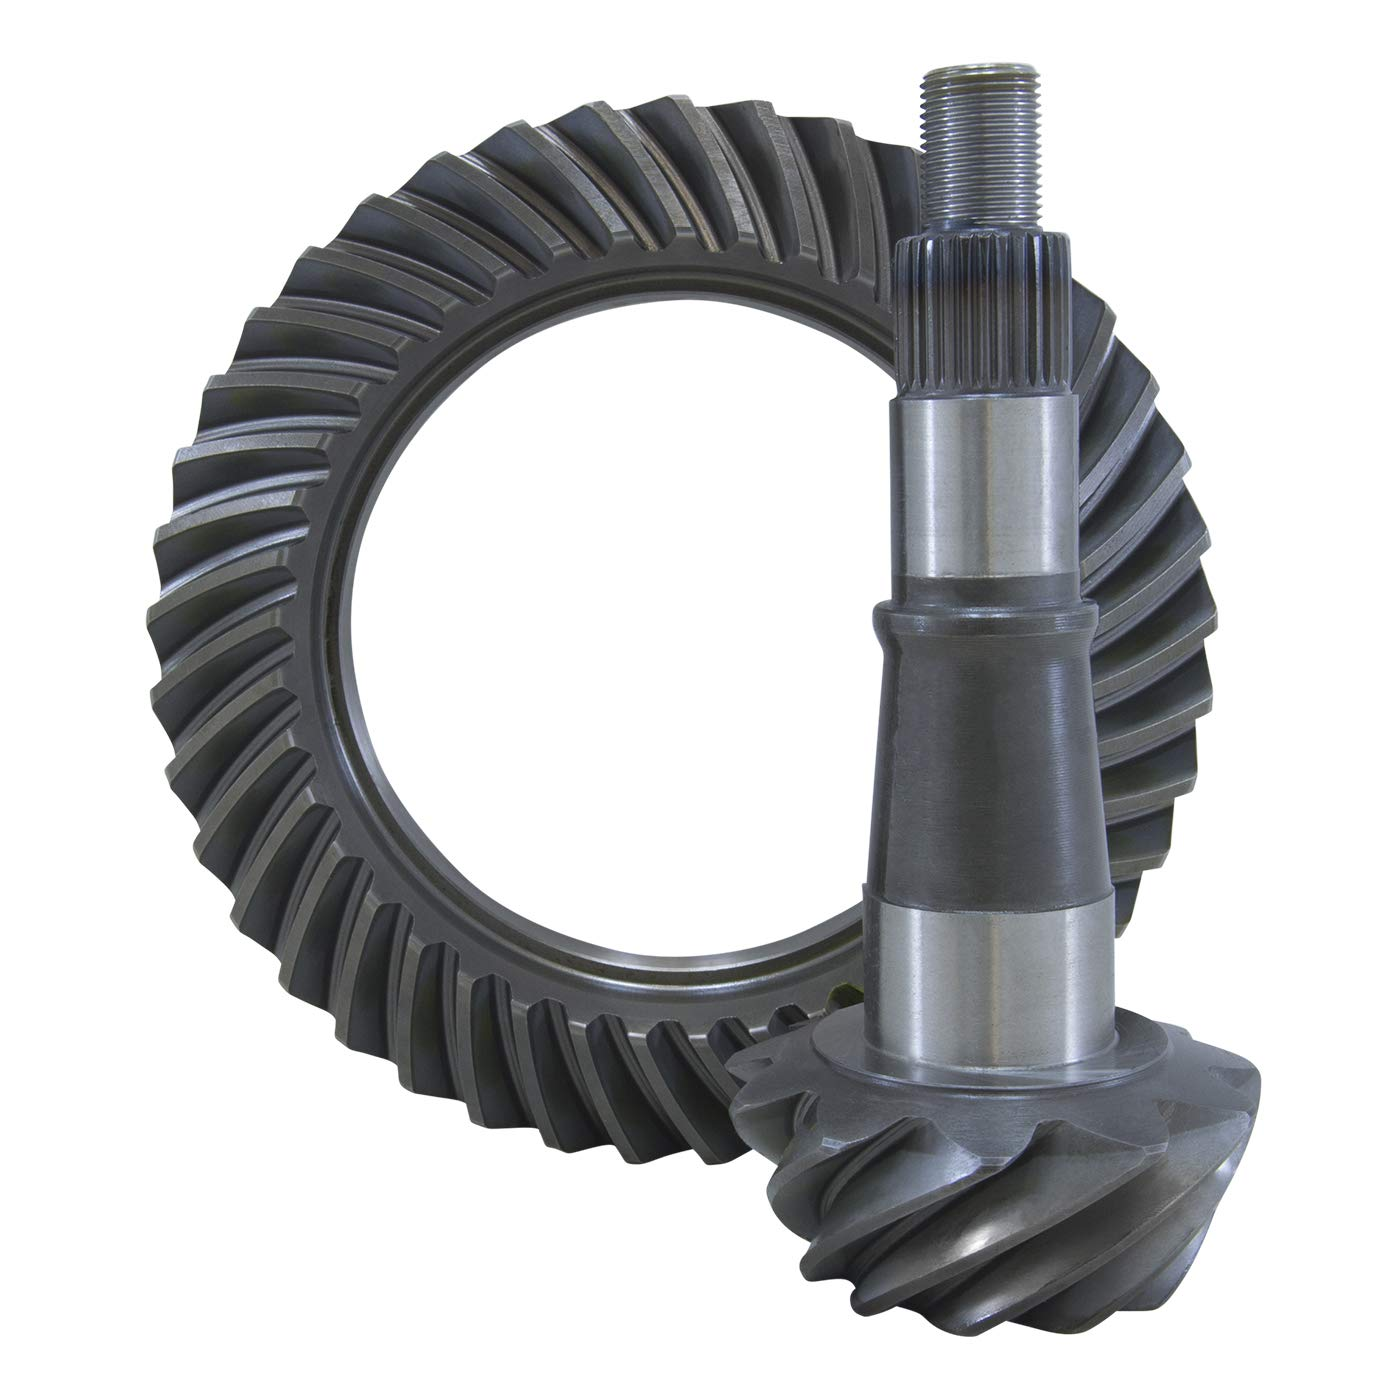 Yukon (YG C9.25R-373R) High Performance Ring and Pinion Gear Set for Chrysler/Dodge 9.25'' Front Differential by Yukon Gear